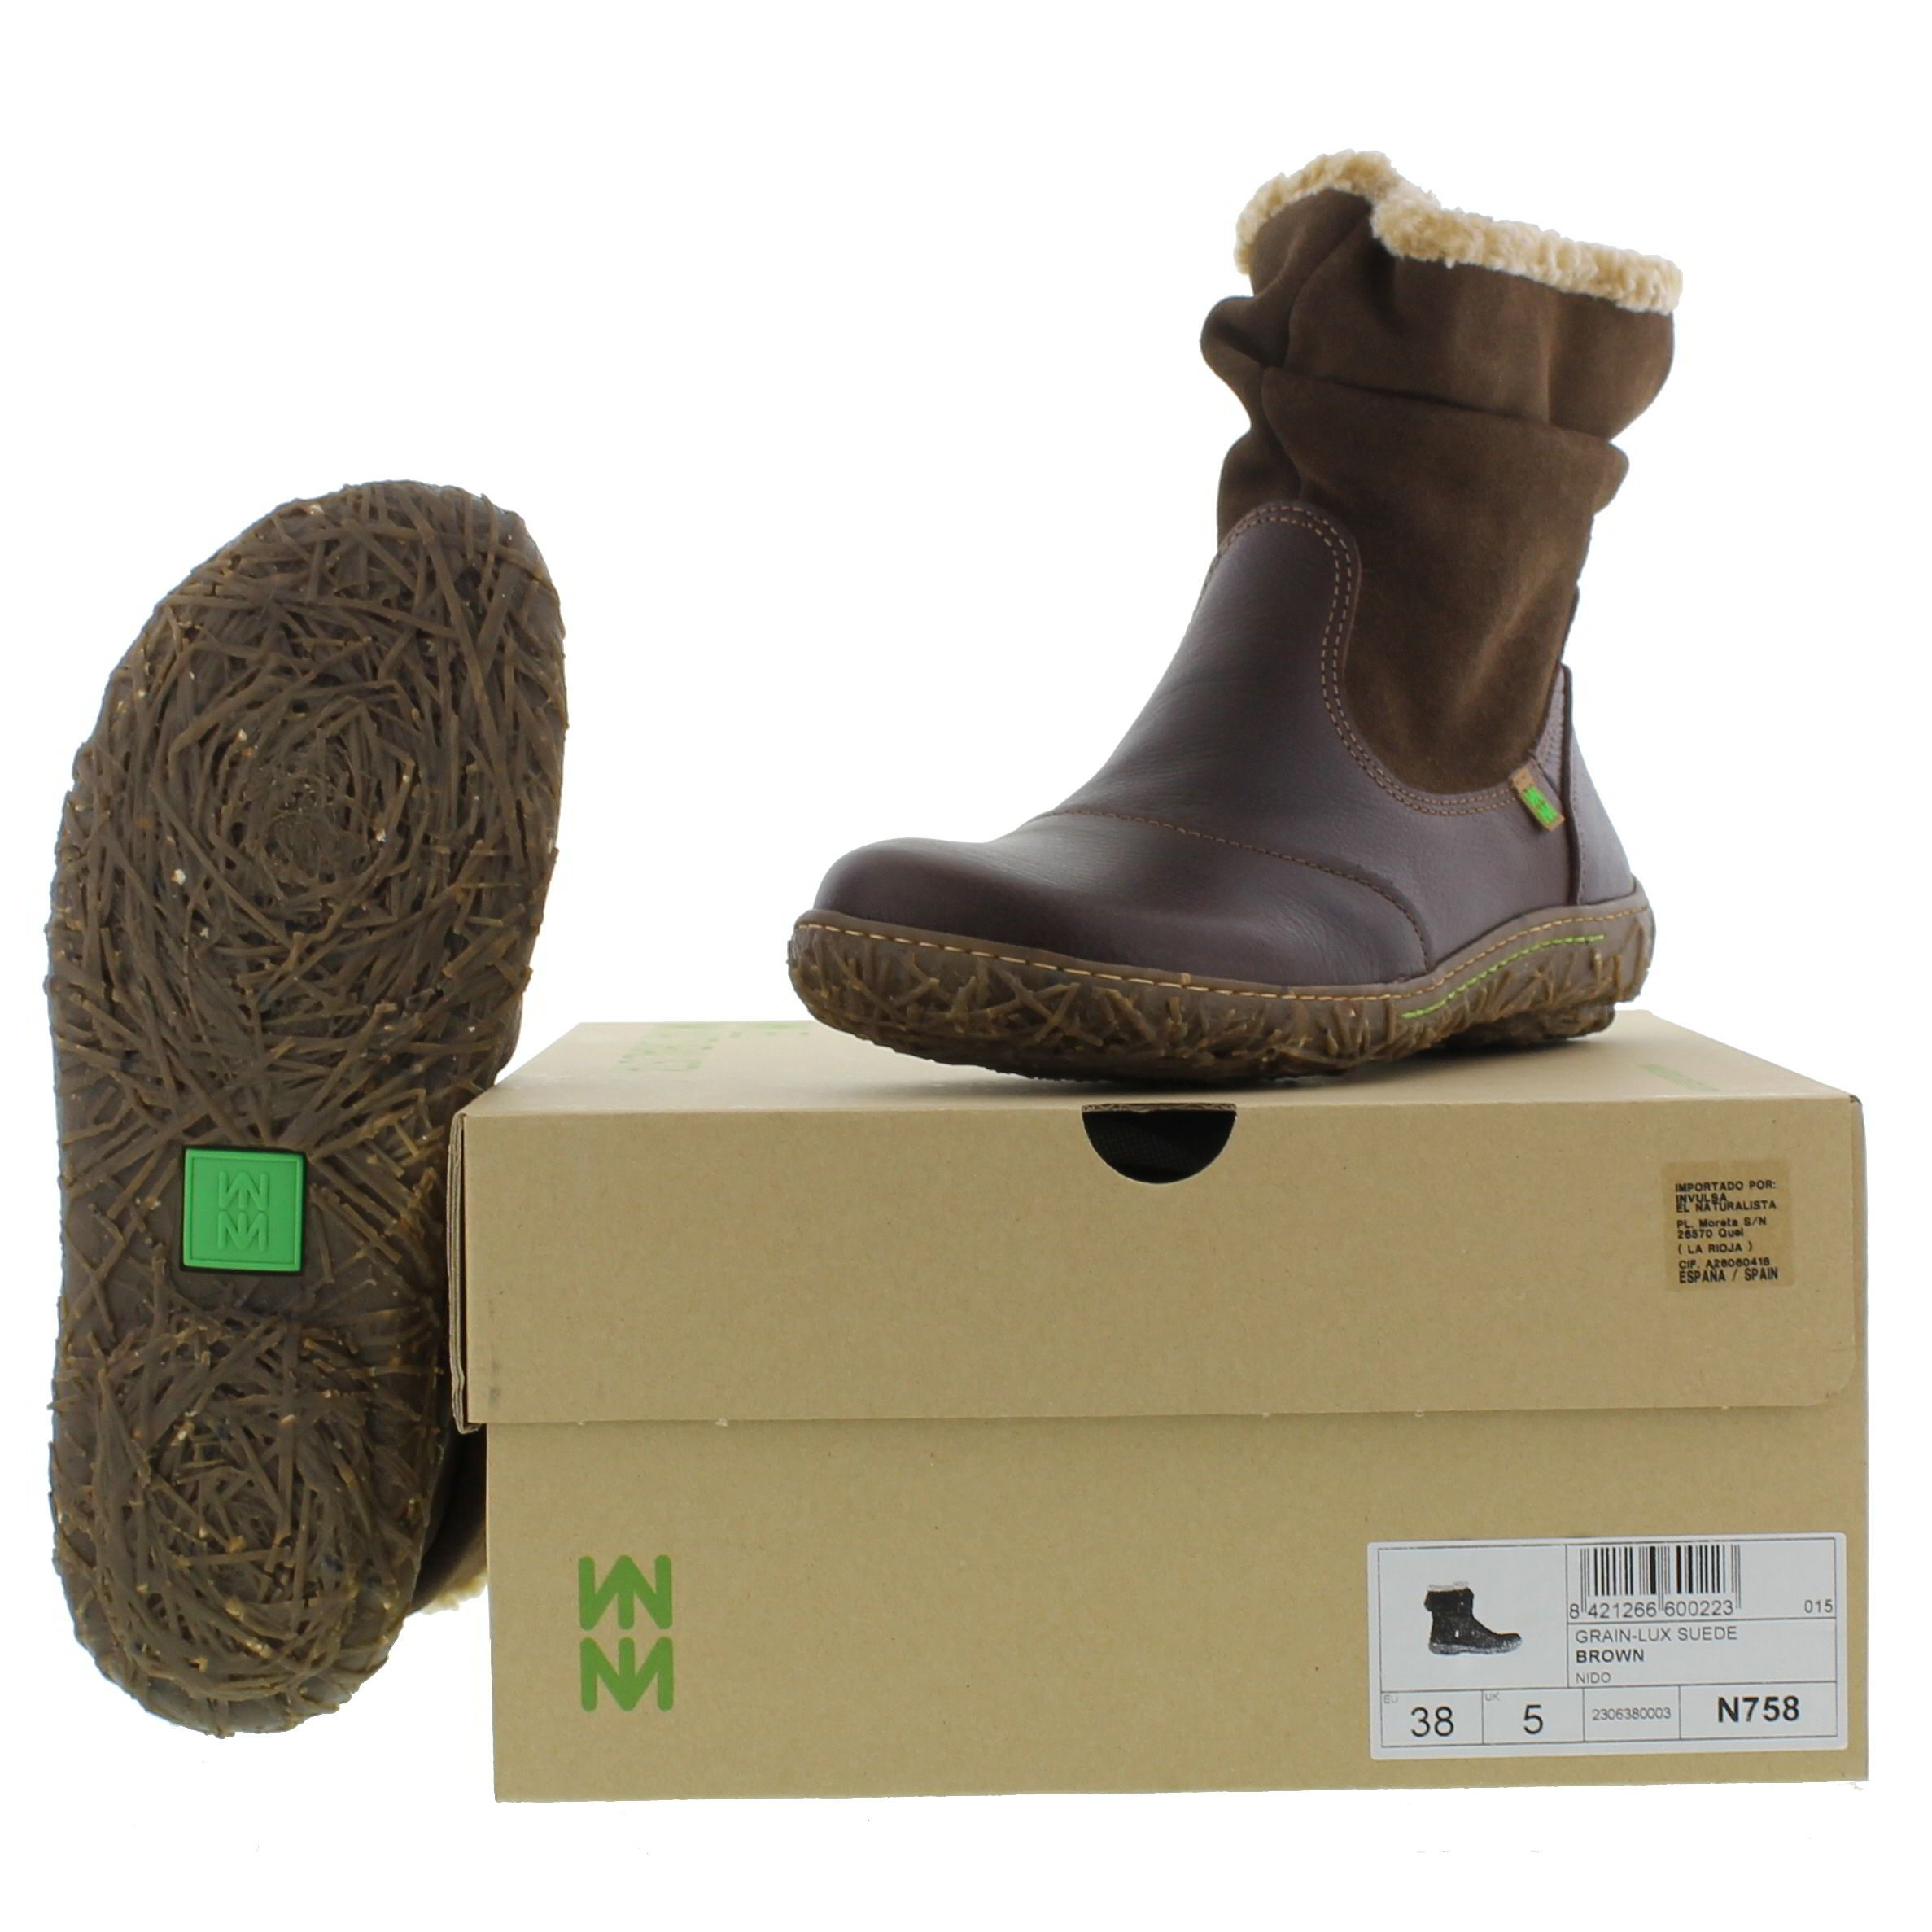 Brown Naturalista New Nido 99 Boots El N758 Ankle Womens £104 ZYqnwd7